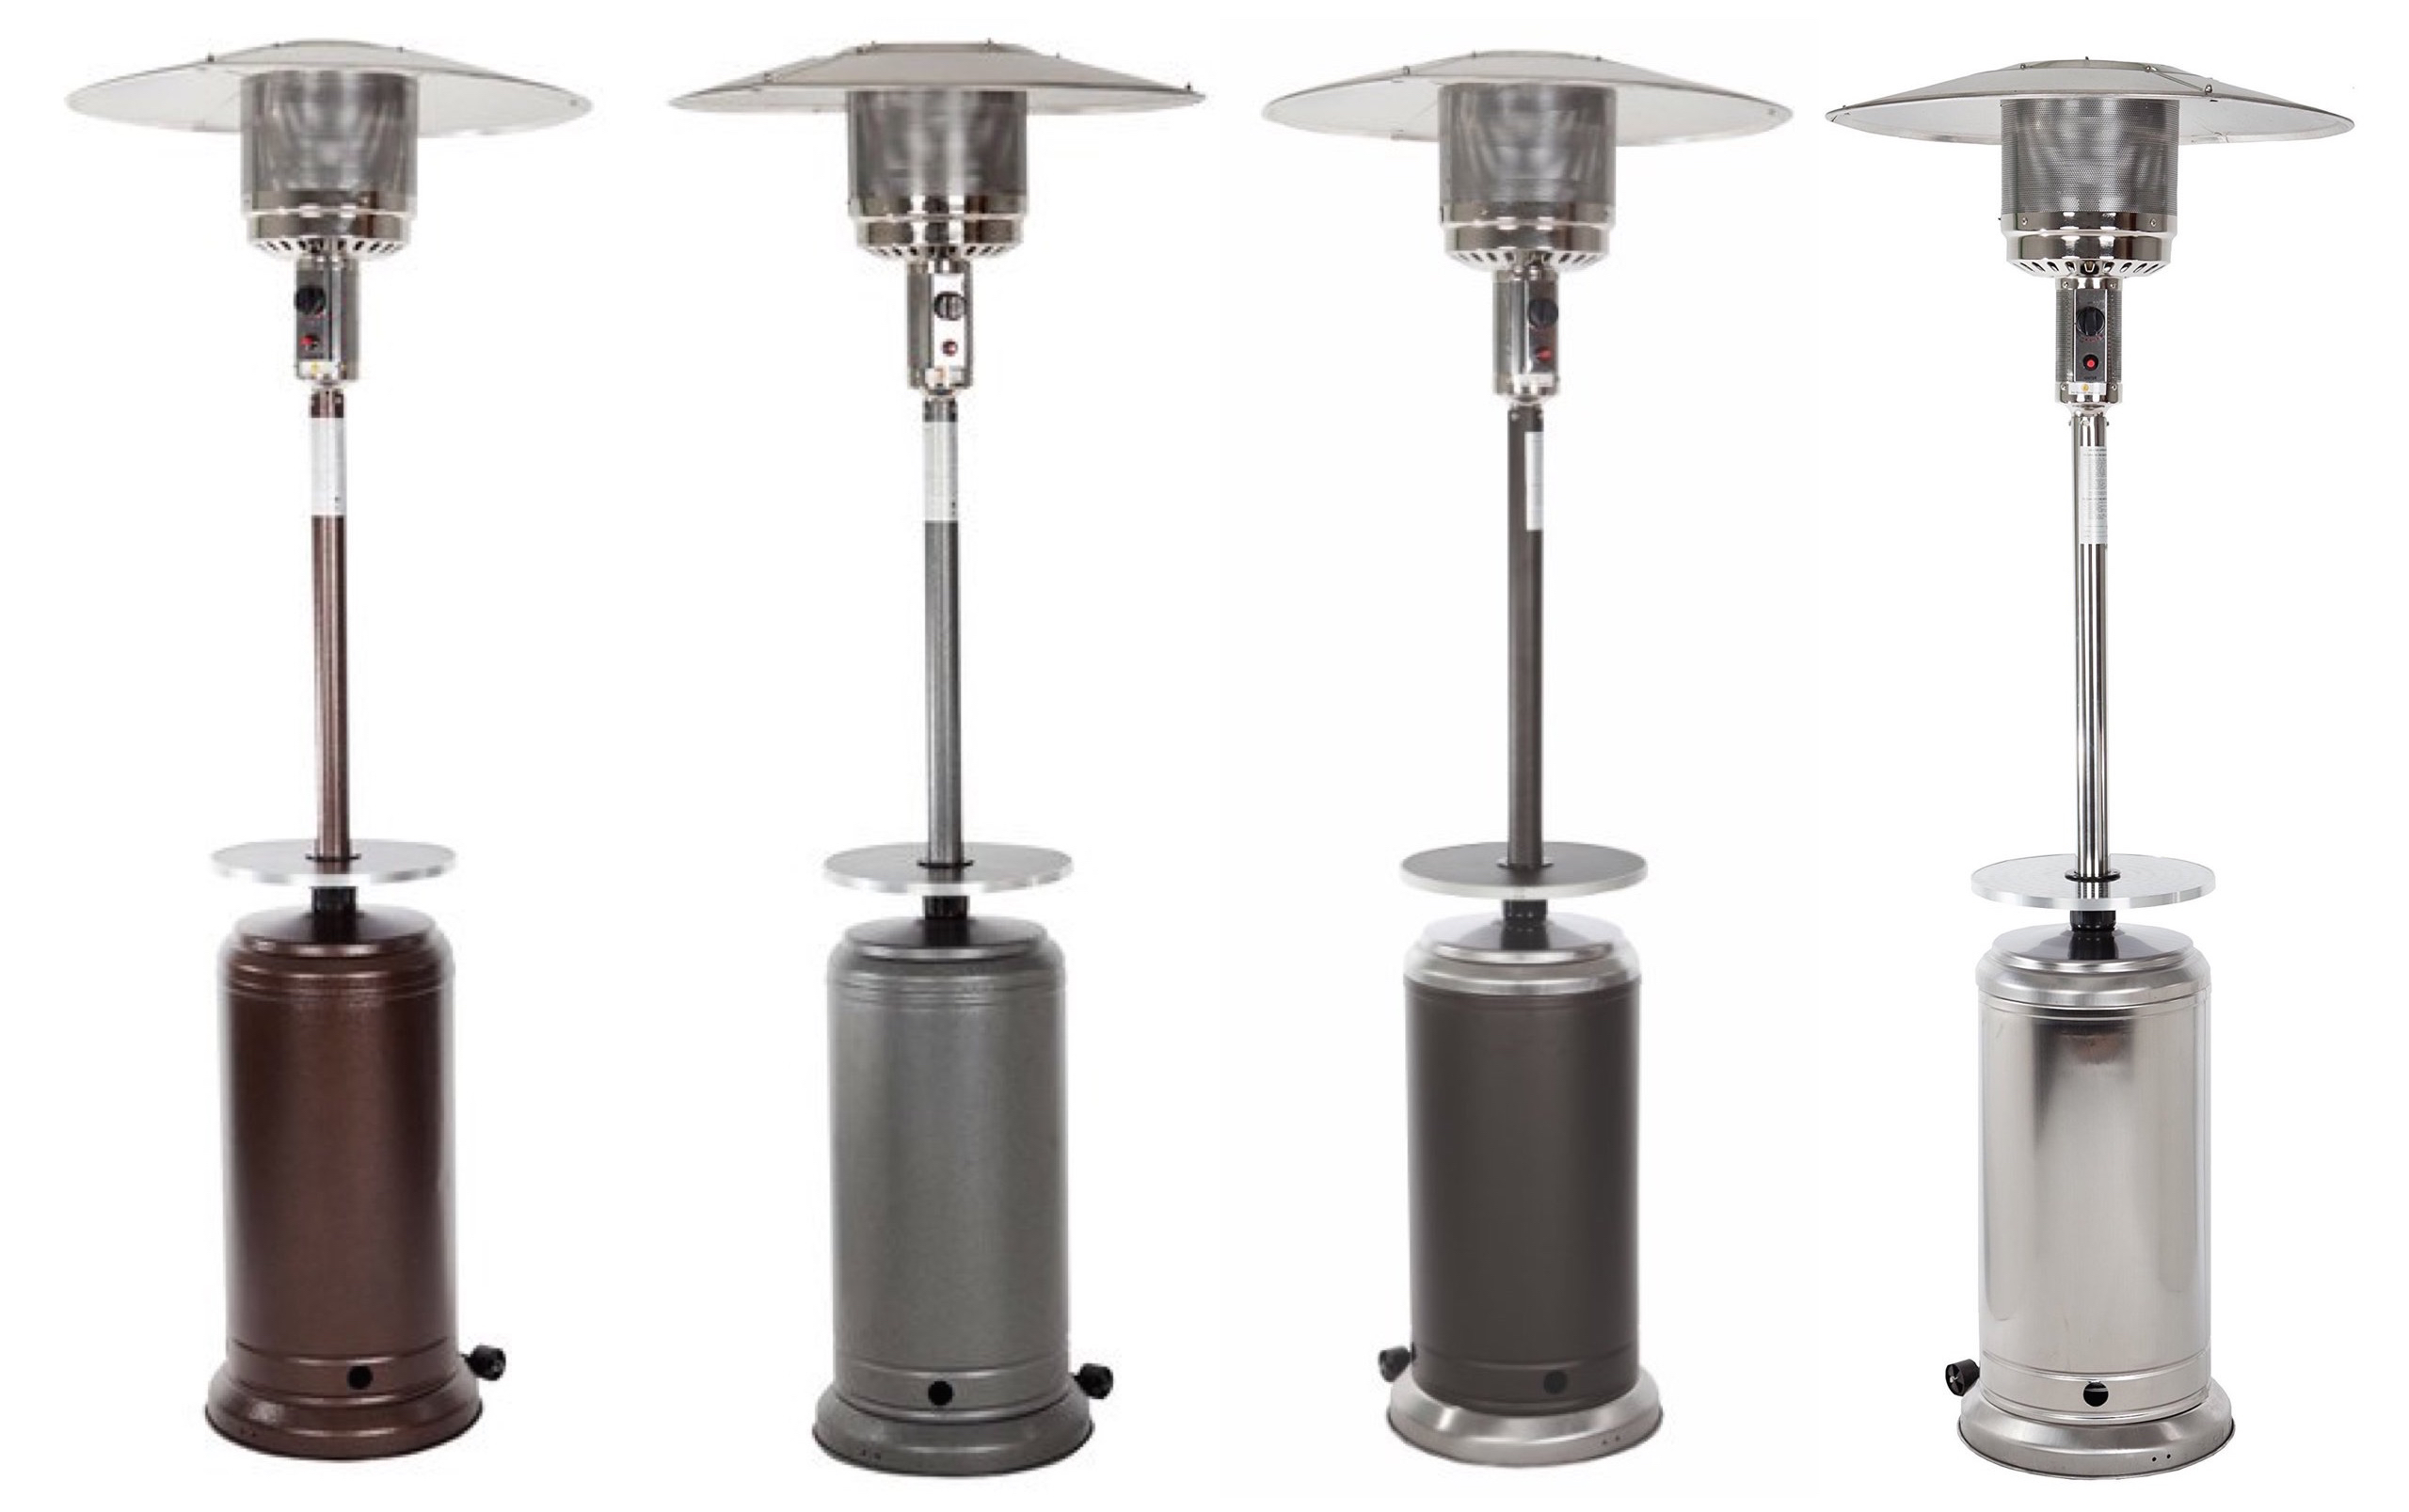 Standard Series Patio Heater with Adjustable Table